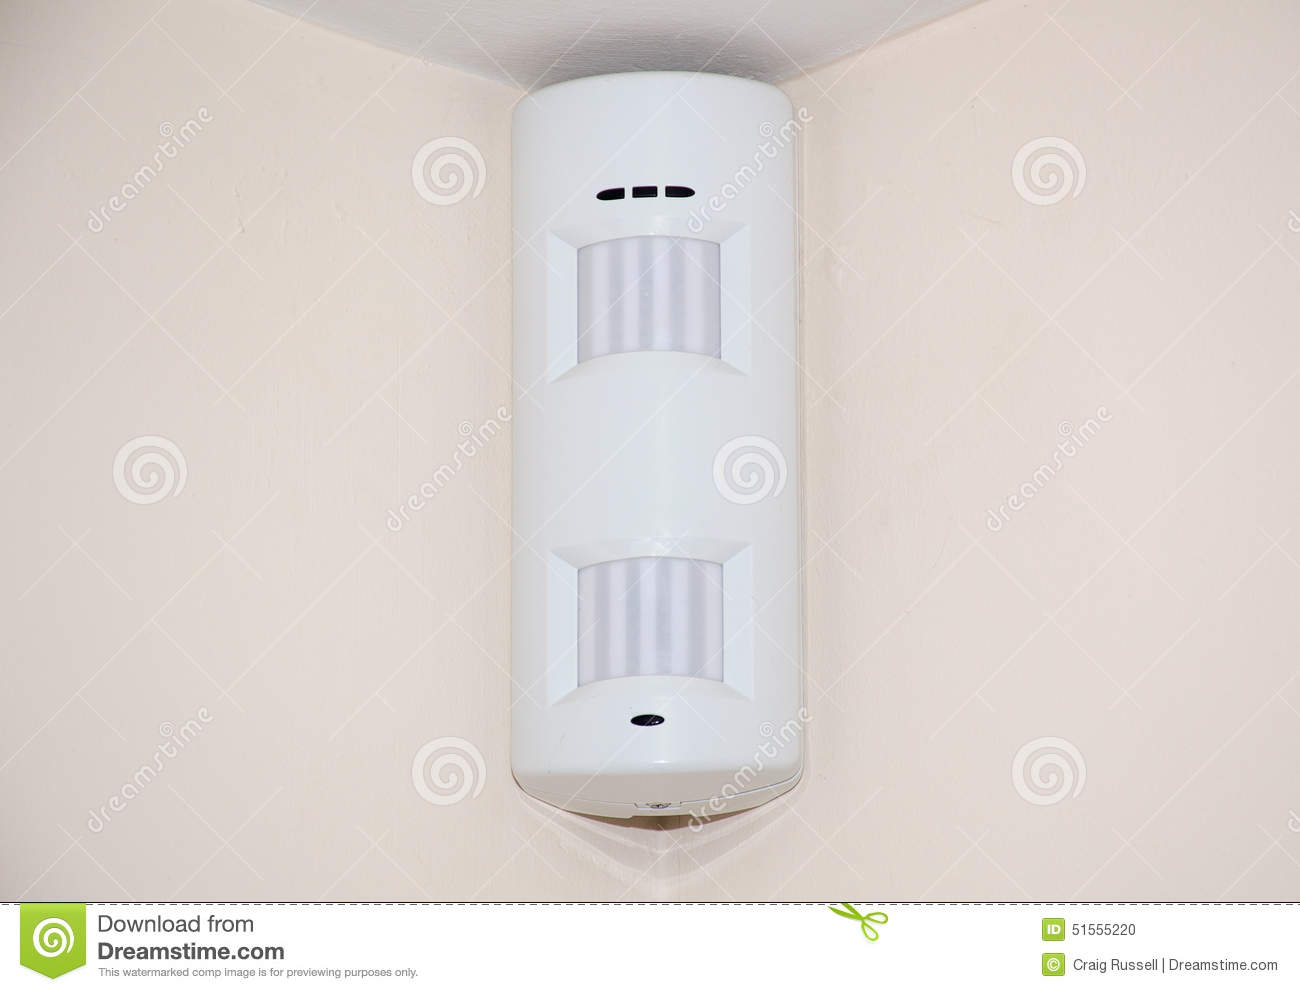 Double Alarm Pir Sensor Stock Photo Image Of Home System 51555220 Based Security